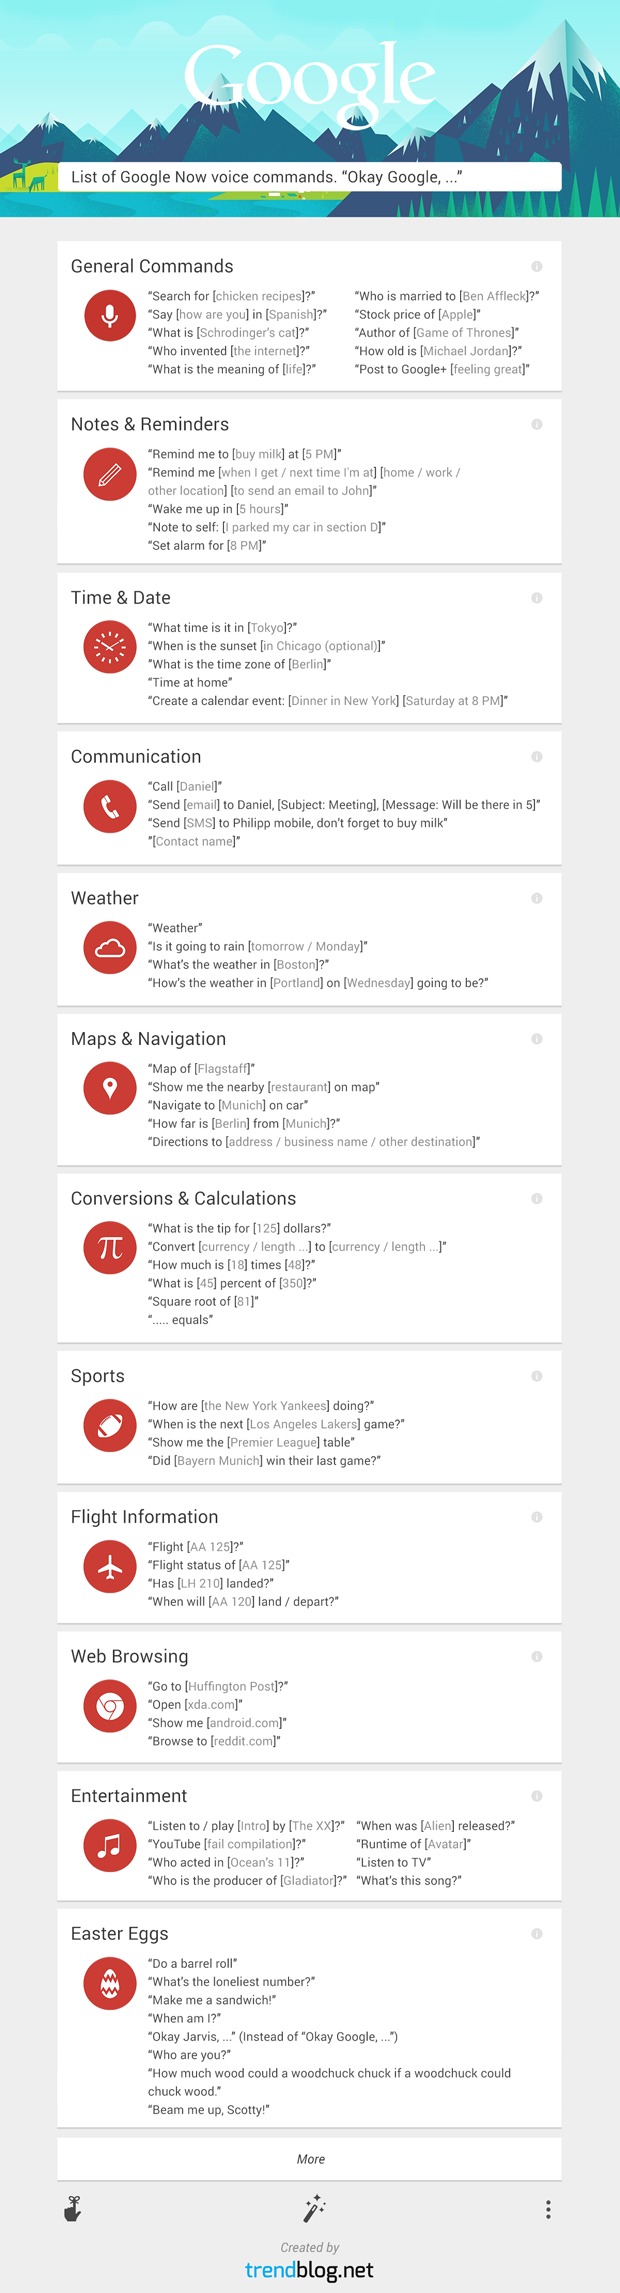 googlenow-commands